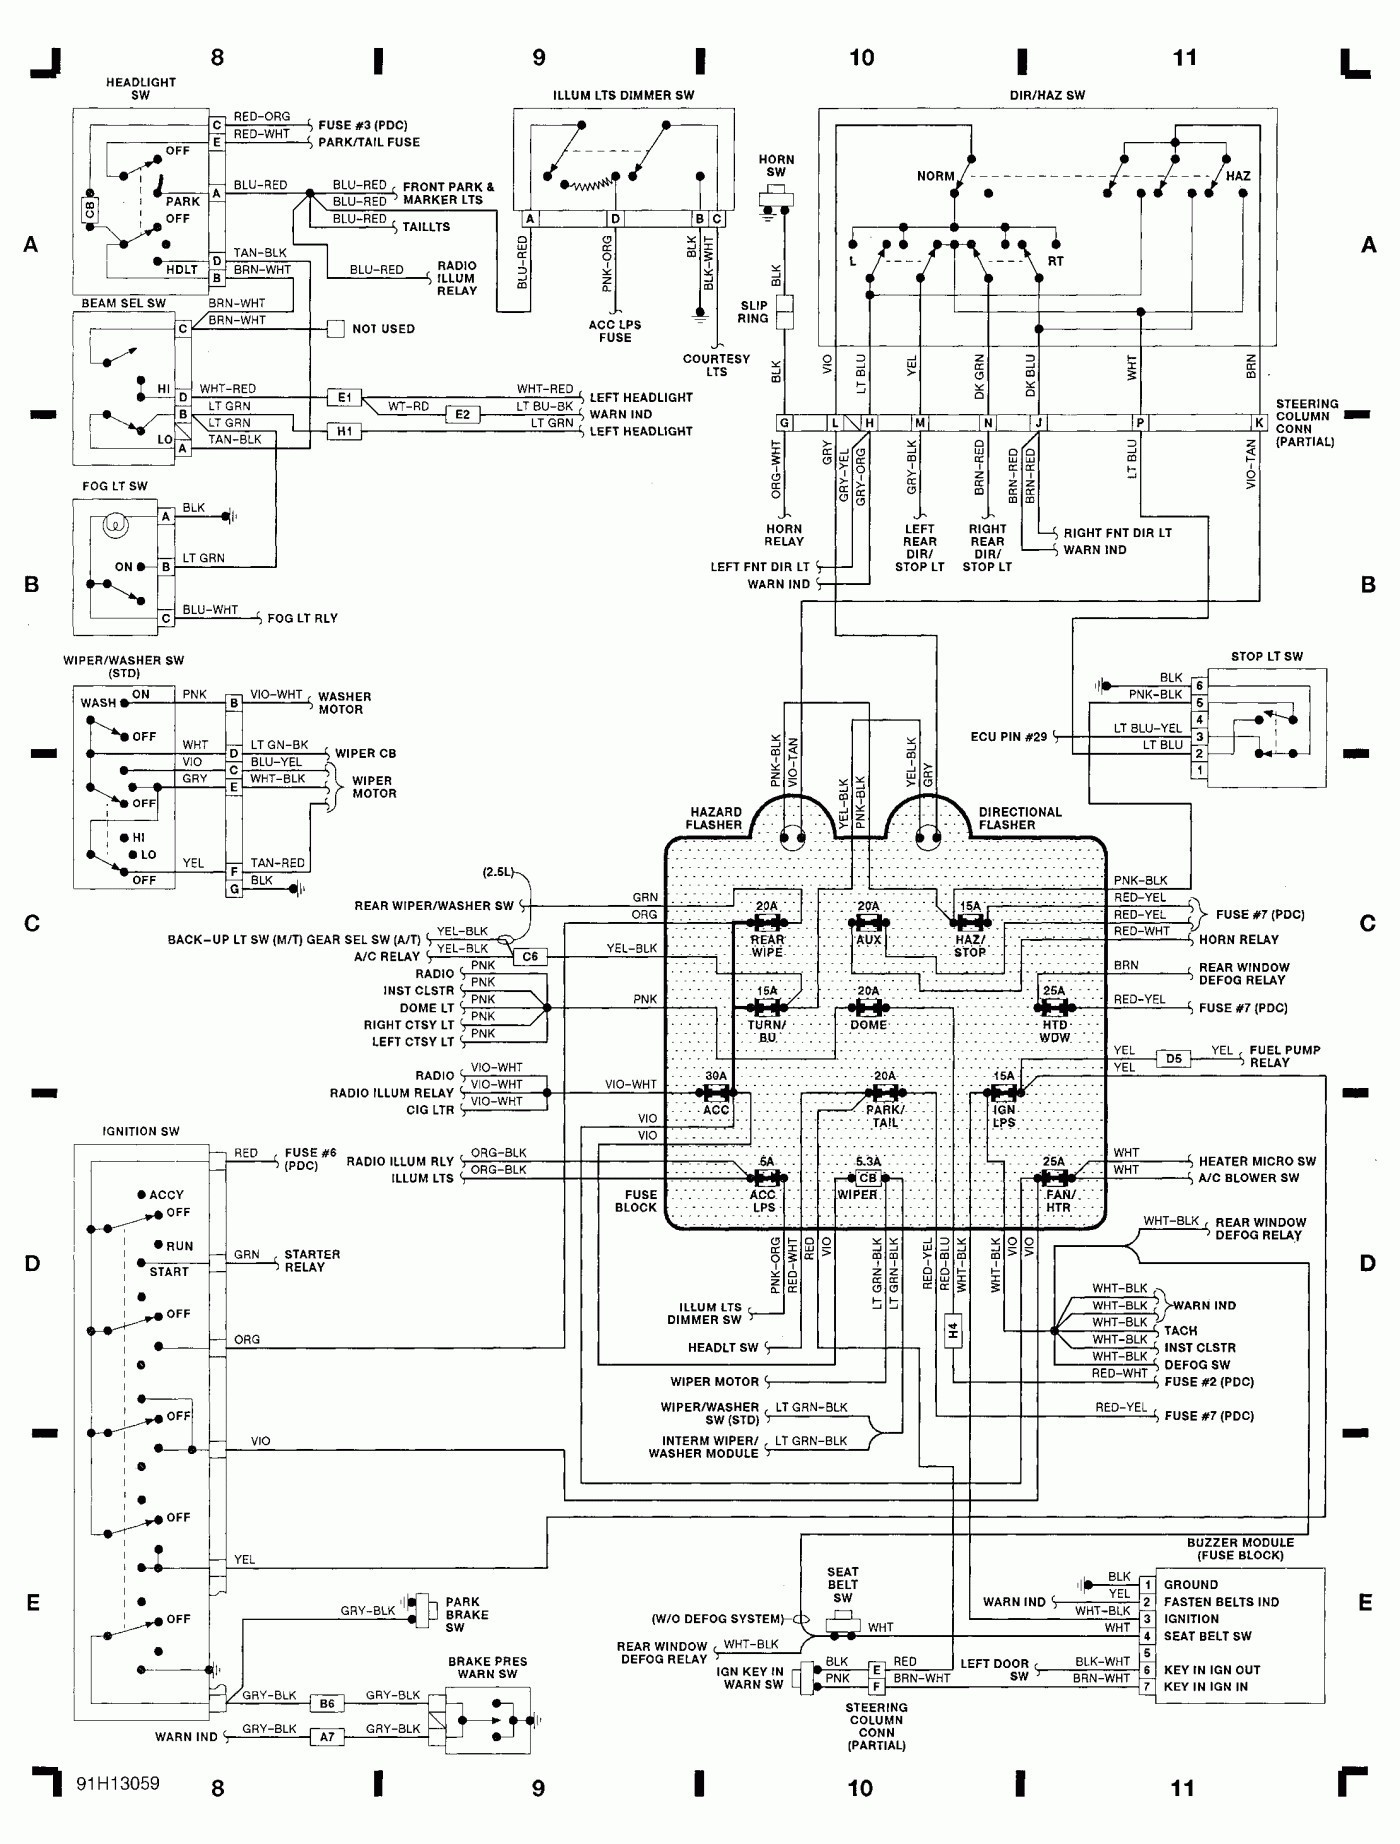 grote led lights wiring diagram